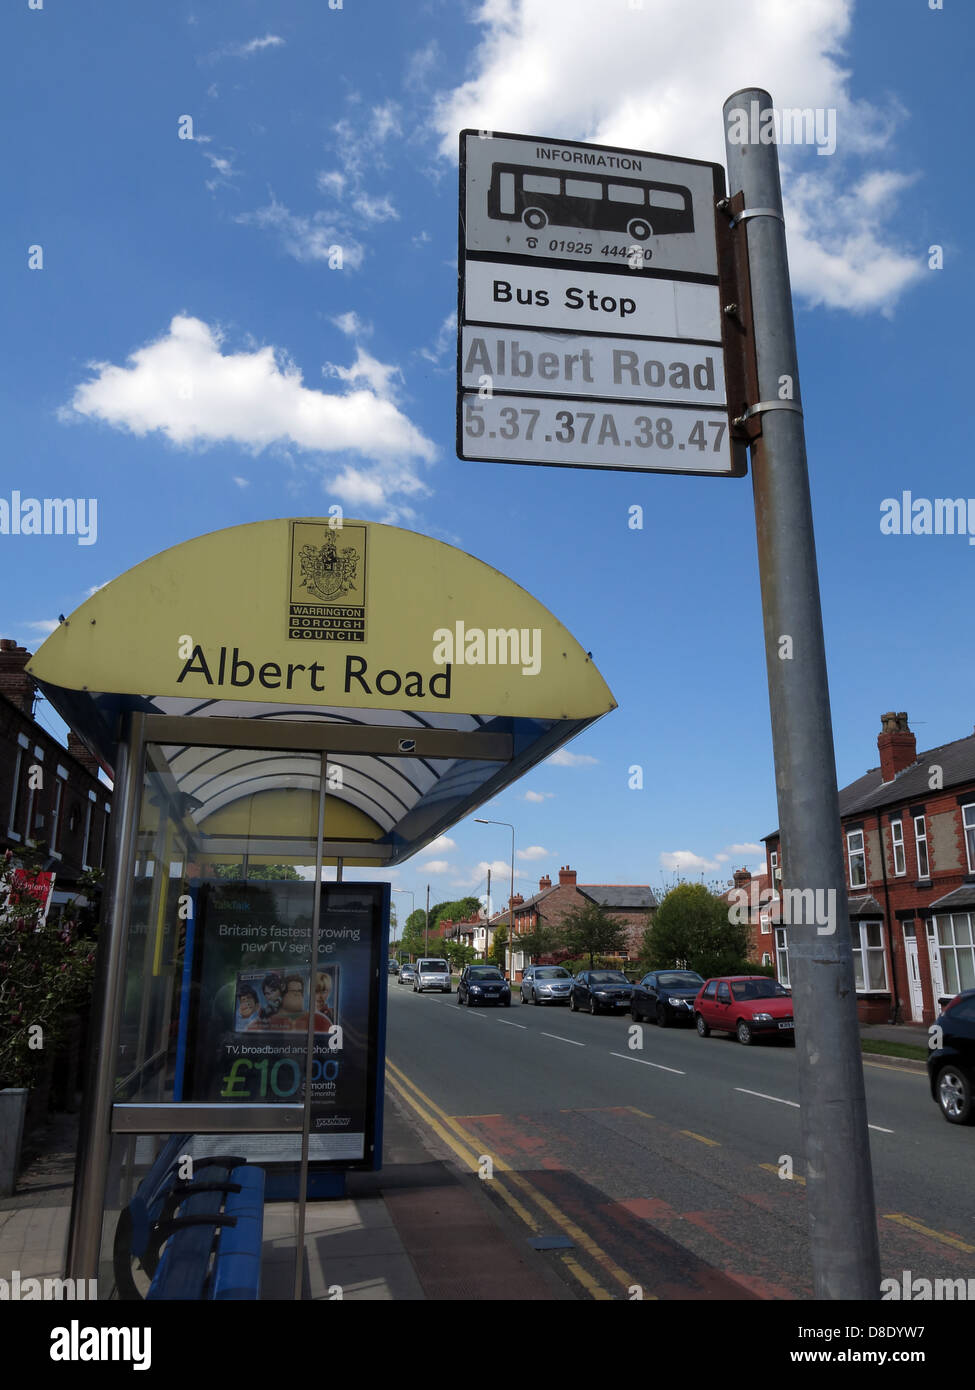 Albert Road bus stop Knutsford Road Warrington Cheshire England UK - Stock Image